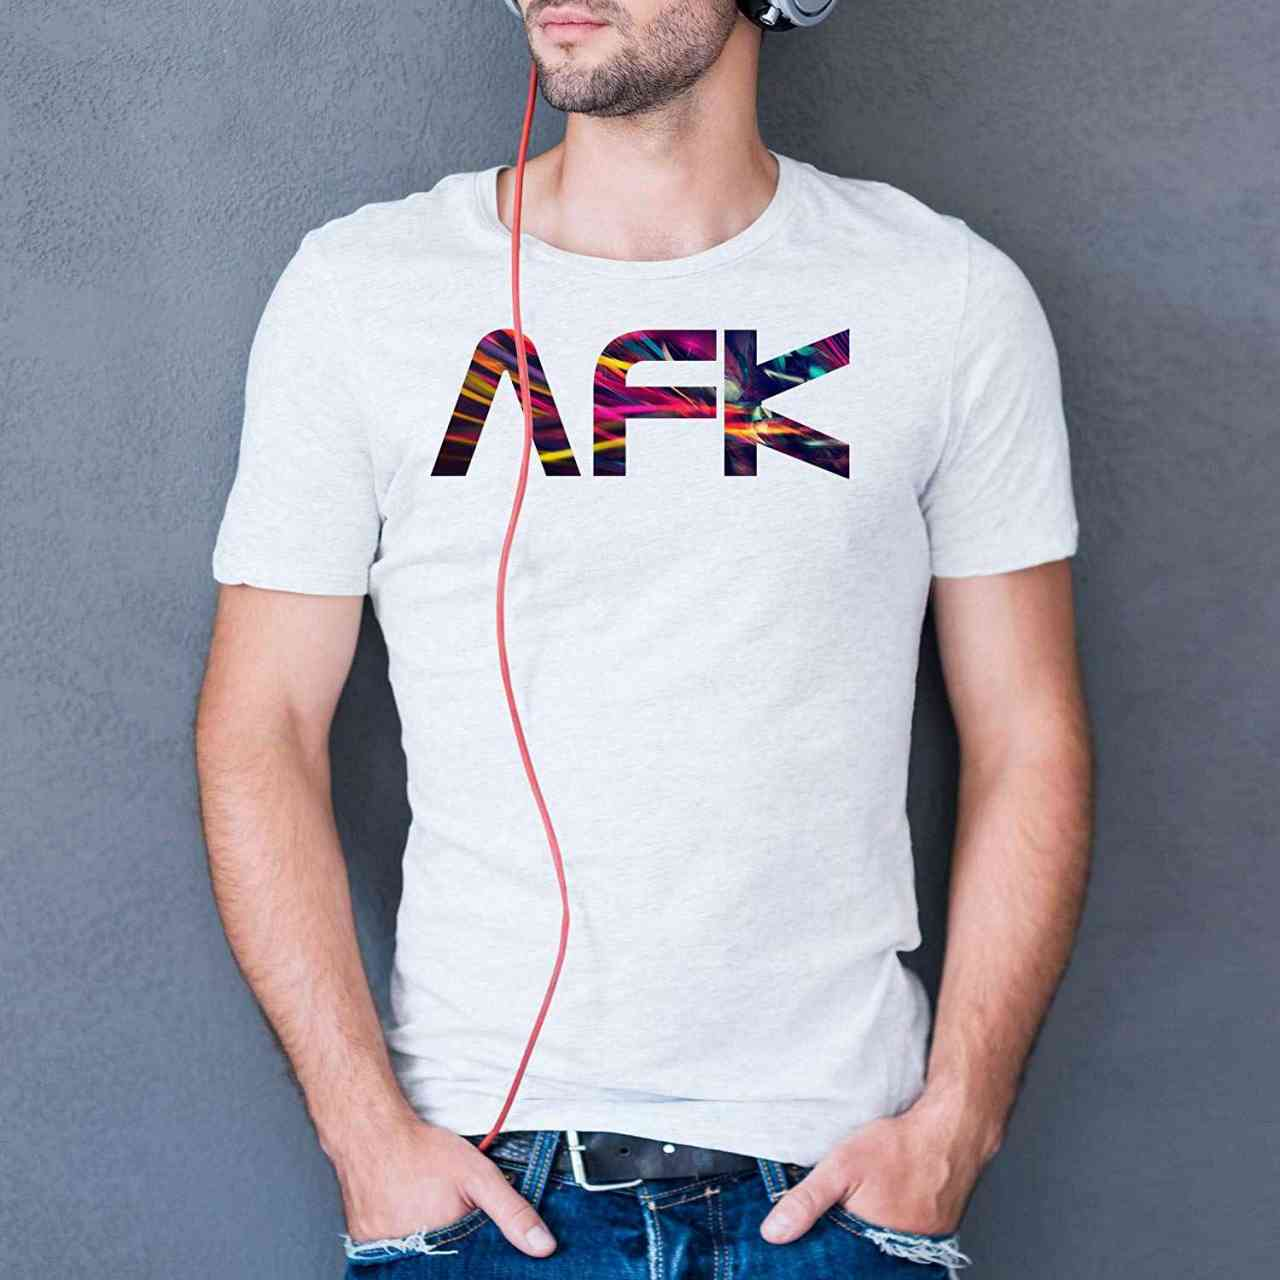 "AFK - Gamer T-Shirt |""AFK"" Shirt 